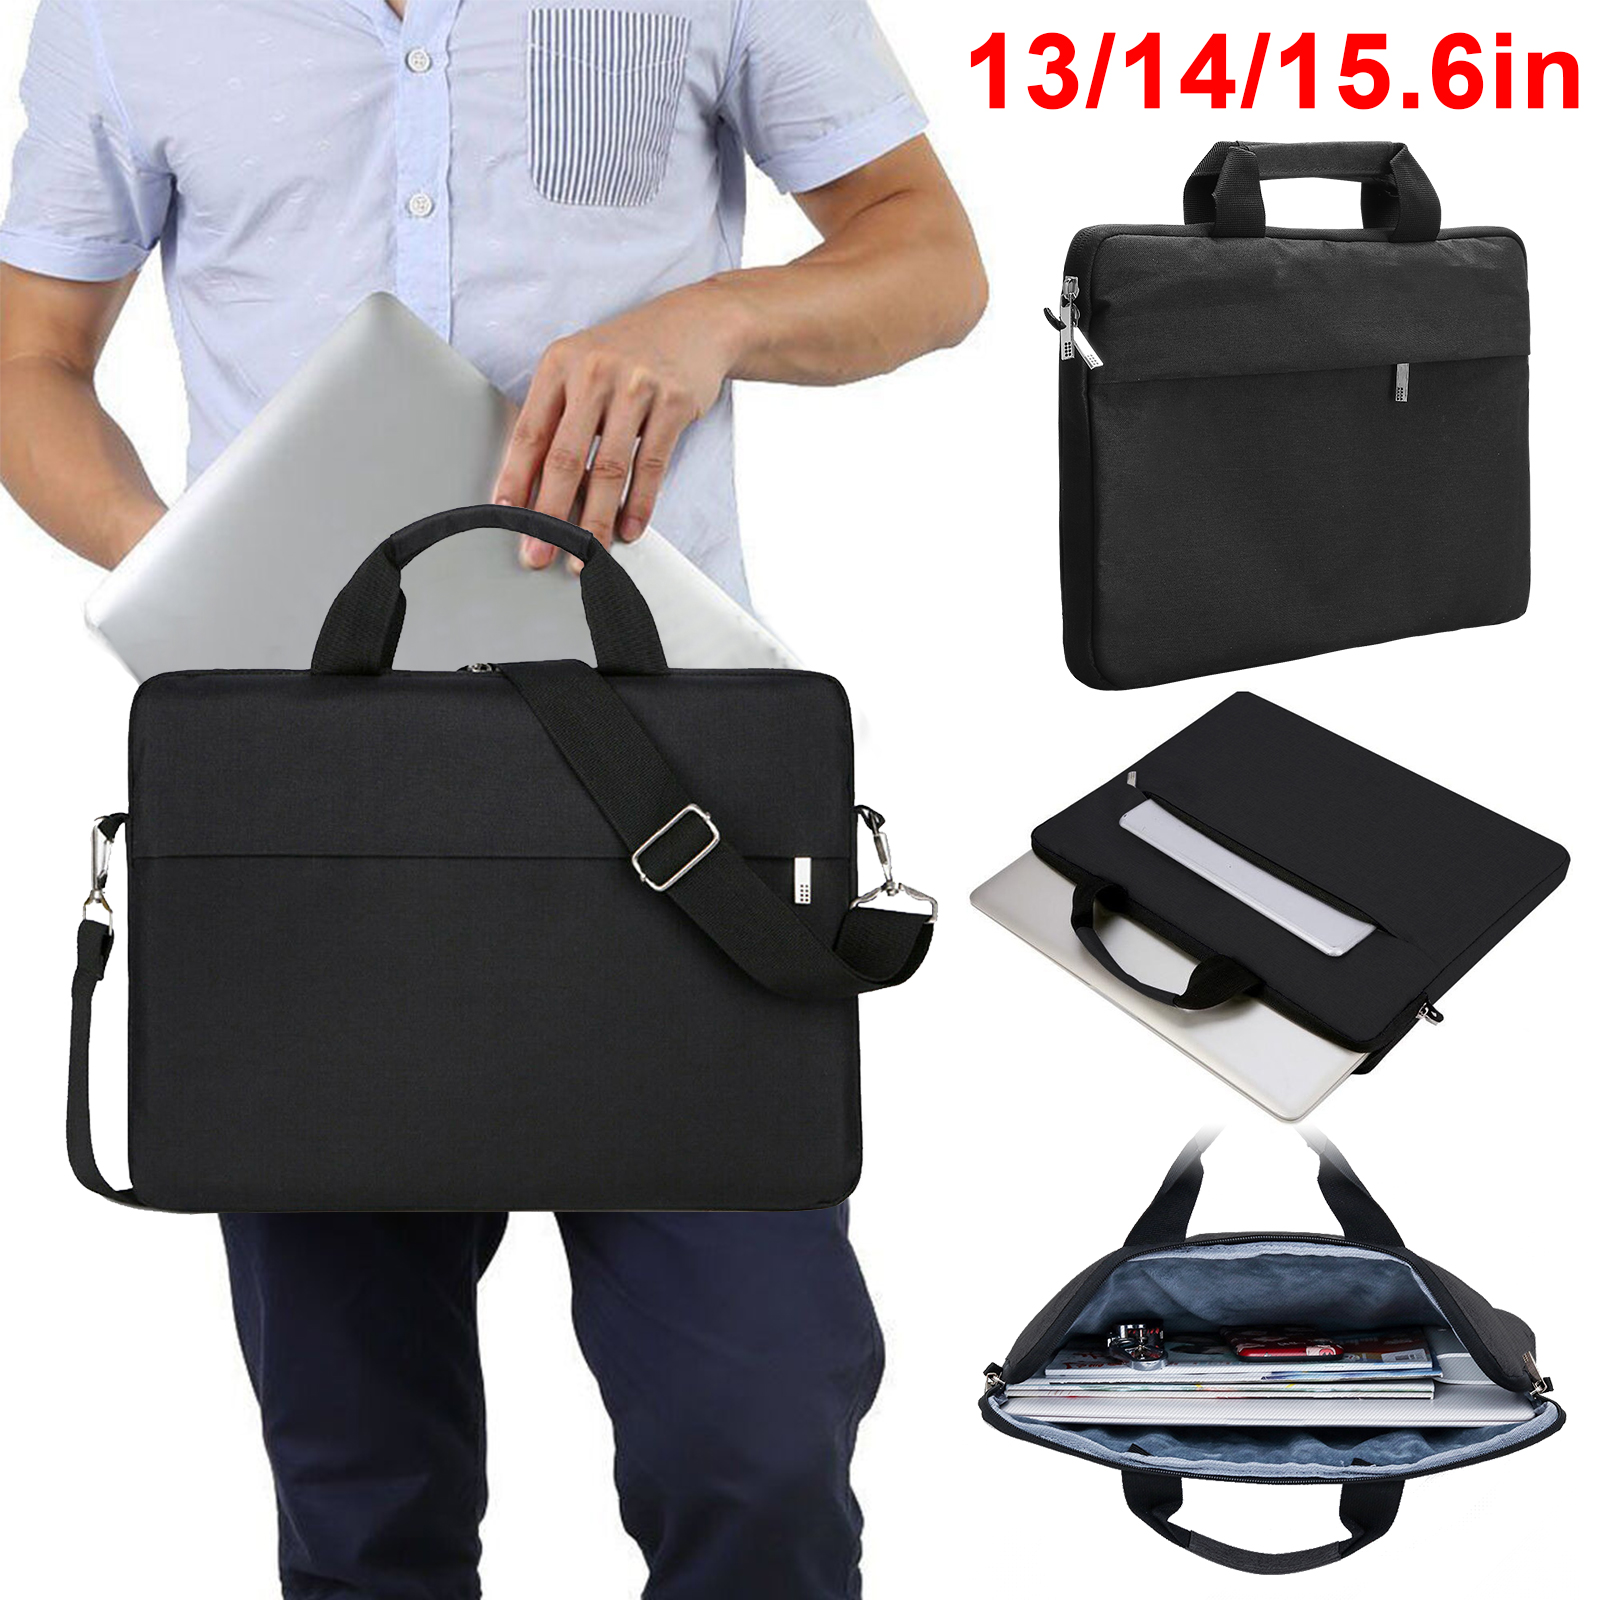 13 14 15 6 Inch Laptop Shoulder Bag Laptop Sleeve Case Multi Functional Notebook Sleeve Carrying Case W Strap Waterproof Fits For Macbook Air Pro Lenovo Acer Asus Dell Lenovo Hp Samsung Etc Walmart Com Walmart Com